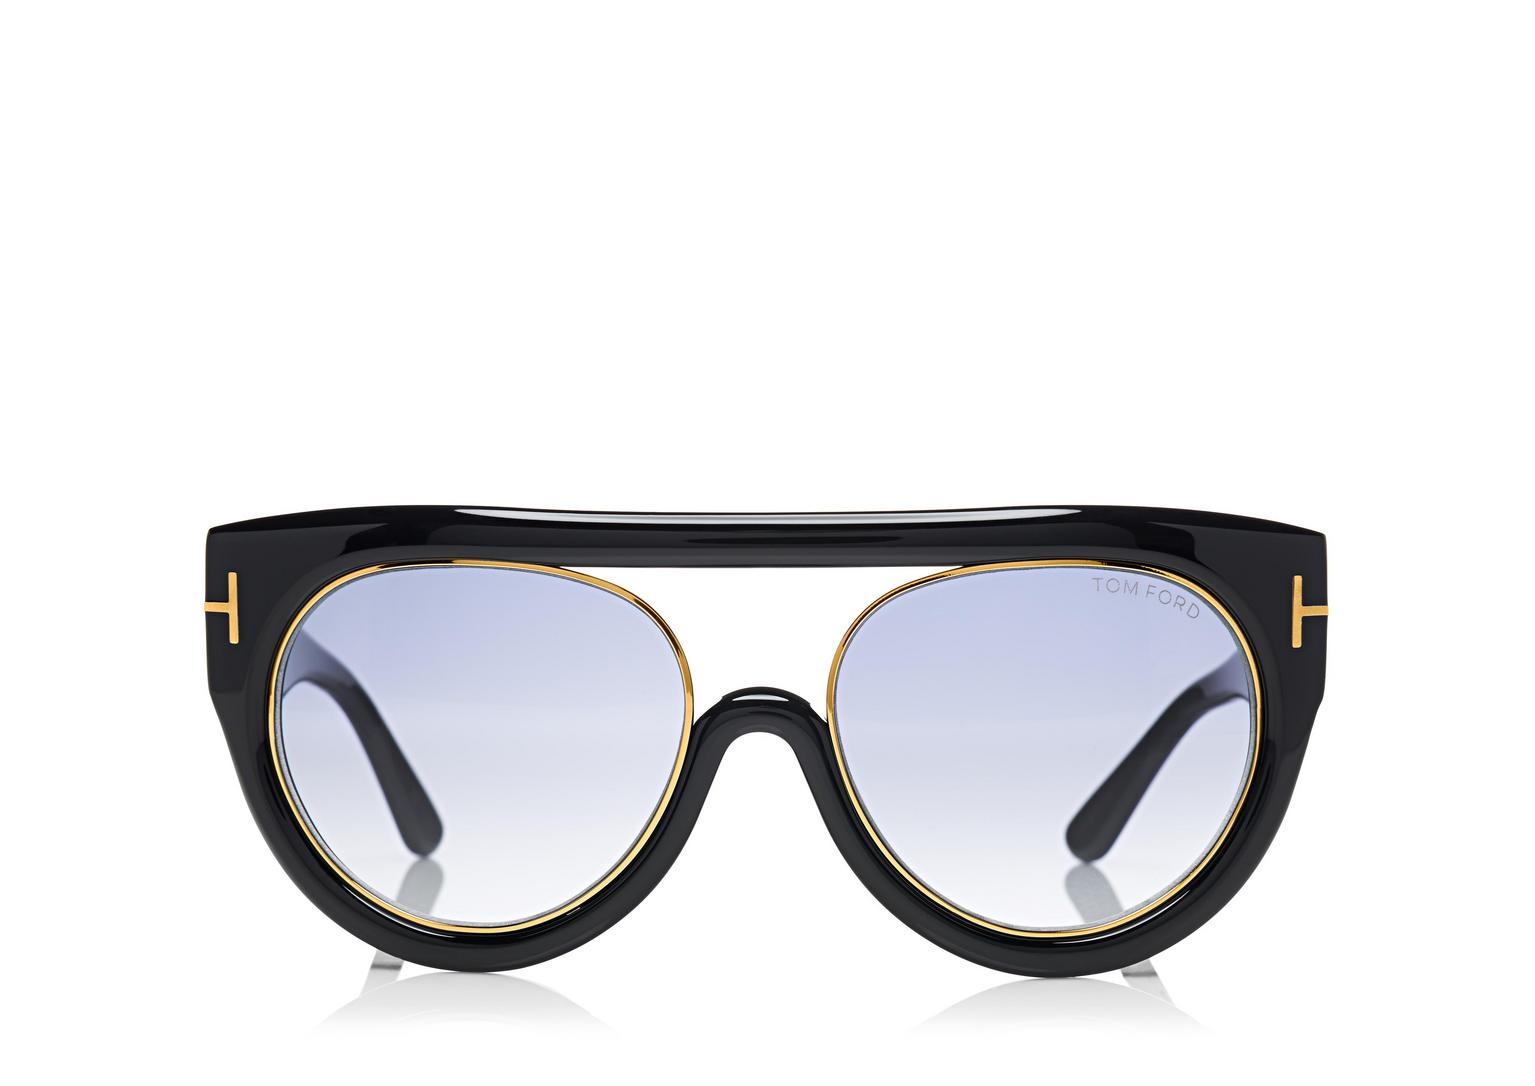 f87c75266c4 Tom Ford Sunglasses 2015 – Southern California Weather Force